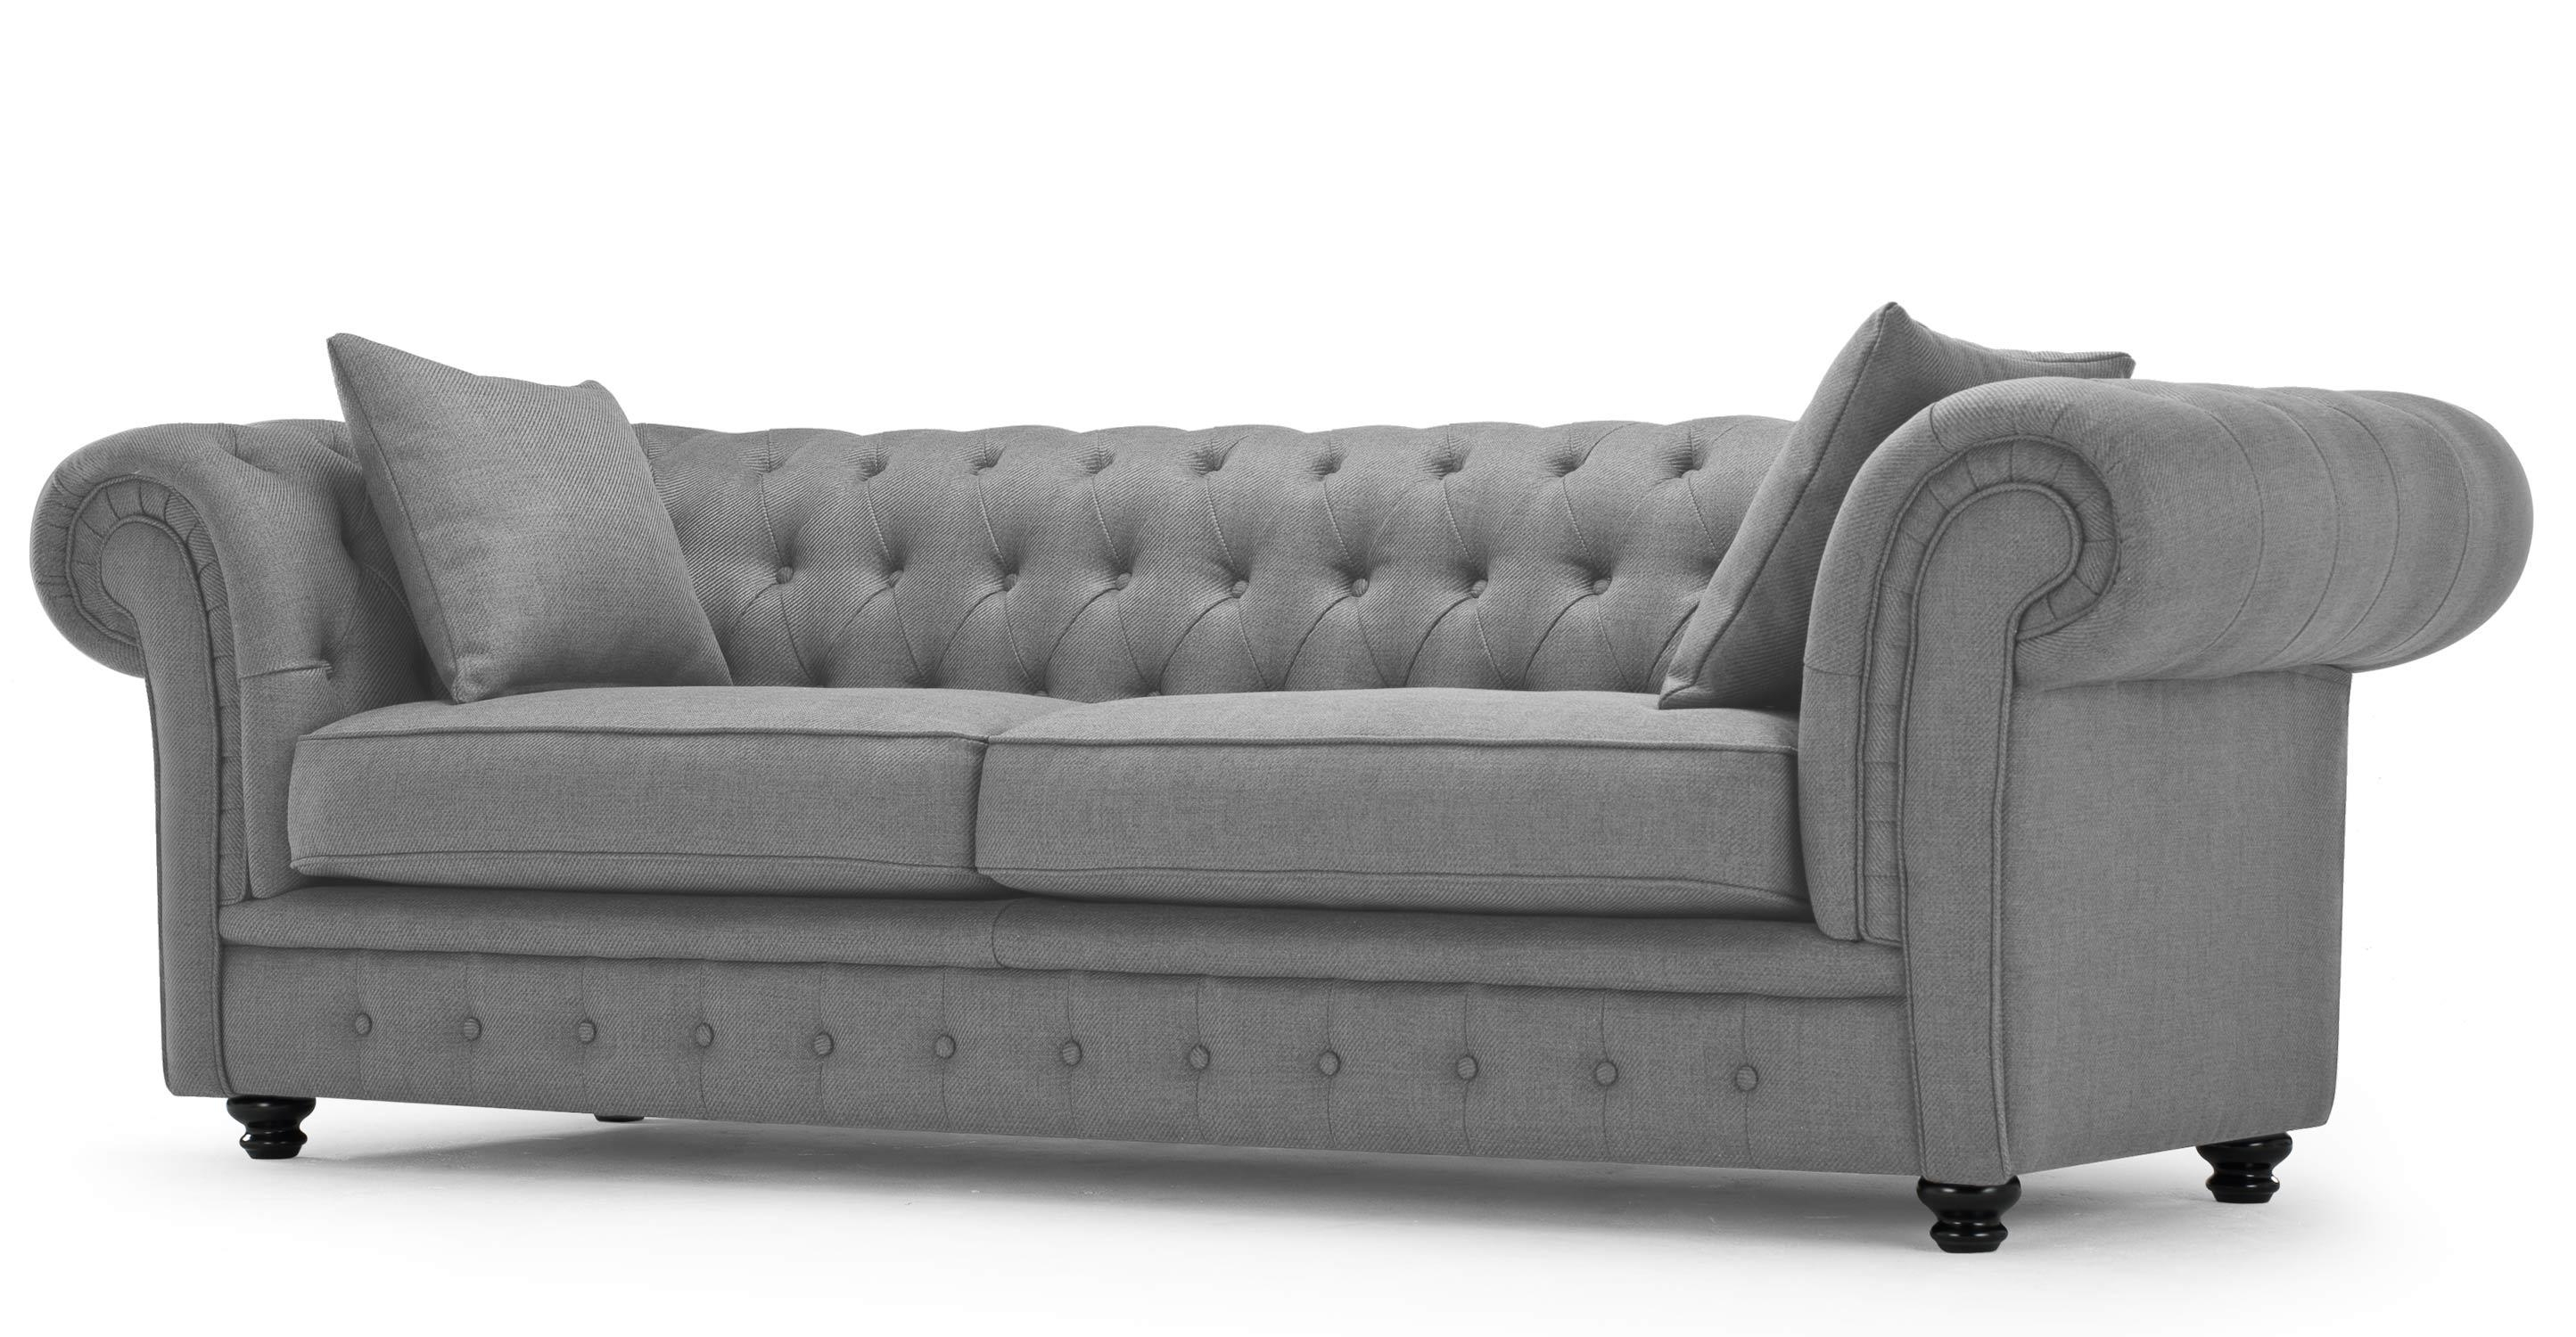 Sofas : Fabulous Green Chesterfield Sofa Chaise Sofa Tufted Within Cheap Tufted Sofas (Image 13 of 23)